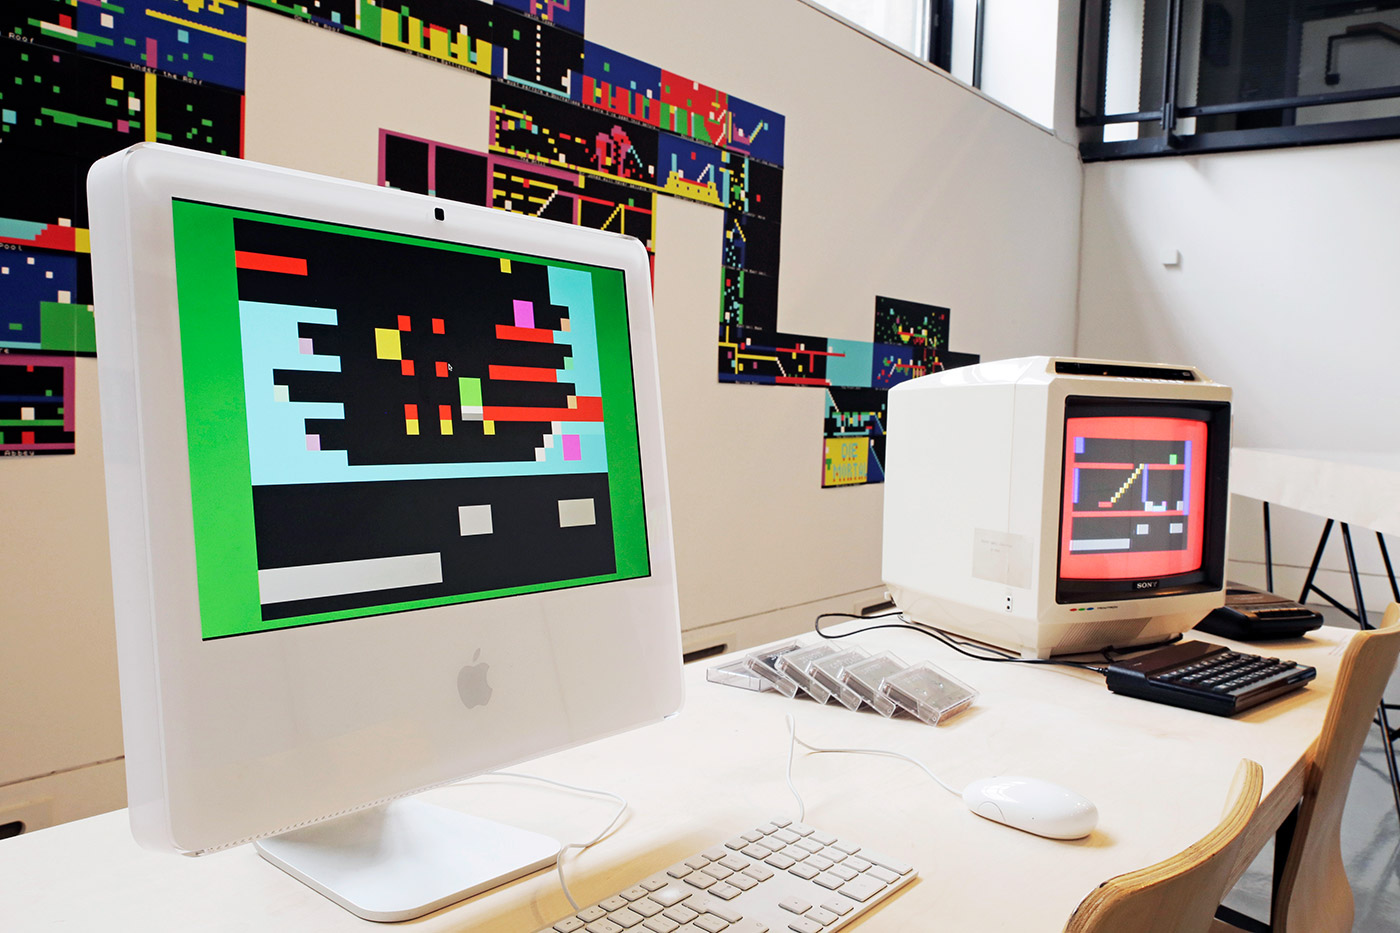 "Left: JODI, Jet Set Willy Variations .SNA (JSW011), 2002 ZX Spectrum software as 48K snapshots, ZX Spectrum emulator and duplicable hardware; shown: iMac 21,5"" (late 2012) with OS X Yosemite Version 10.10.5 Right: JODI, Jet Set Willy Variations .TAP (JSW011), 2002 ZX Spectrum computer software on audiocassette and duplicable hardware; shown: ZX Spectrum computer, audiocassette player, Sony KV-1400 14"" TV with colour, sound and RF Behind: JODI, Jet Set Willy Variations .MAP (JSW011), 2002 - present Duplicable print (free download at jetsetwillyvariations.com), dimensions variable Installation detail of JODI: Variable Art for the ZX Spectrum (2016), Dundee Contemporary Arts (Visual Research Centre) Photo: Kathryn Rattra, courtesy NEoN Digital Arts"